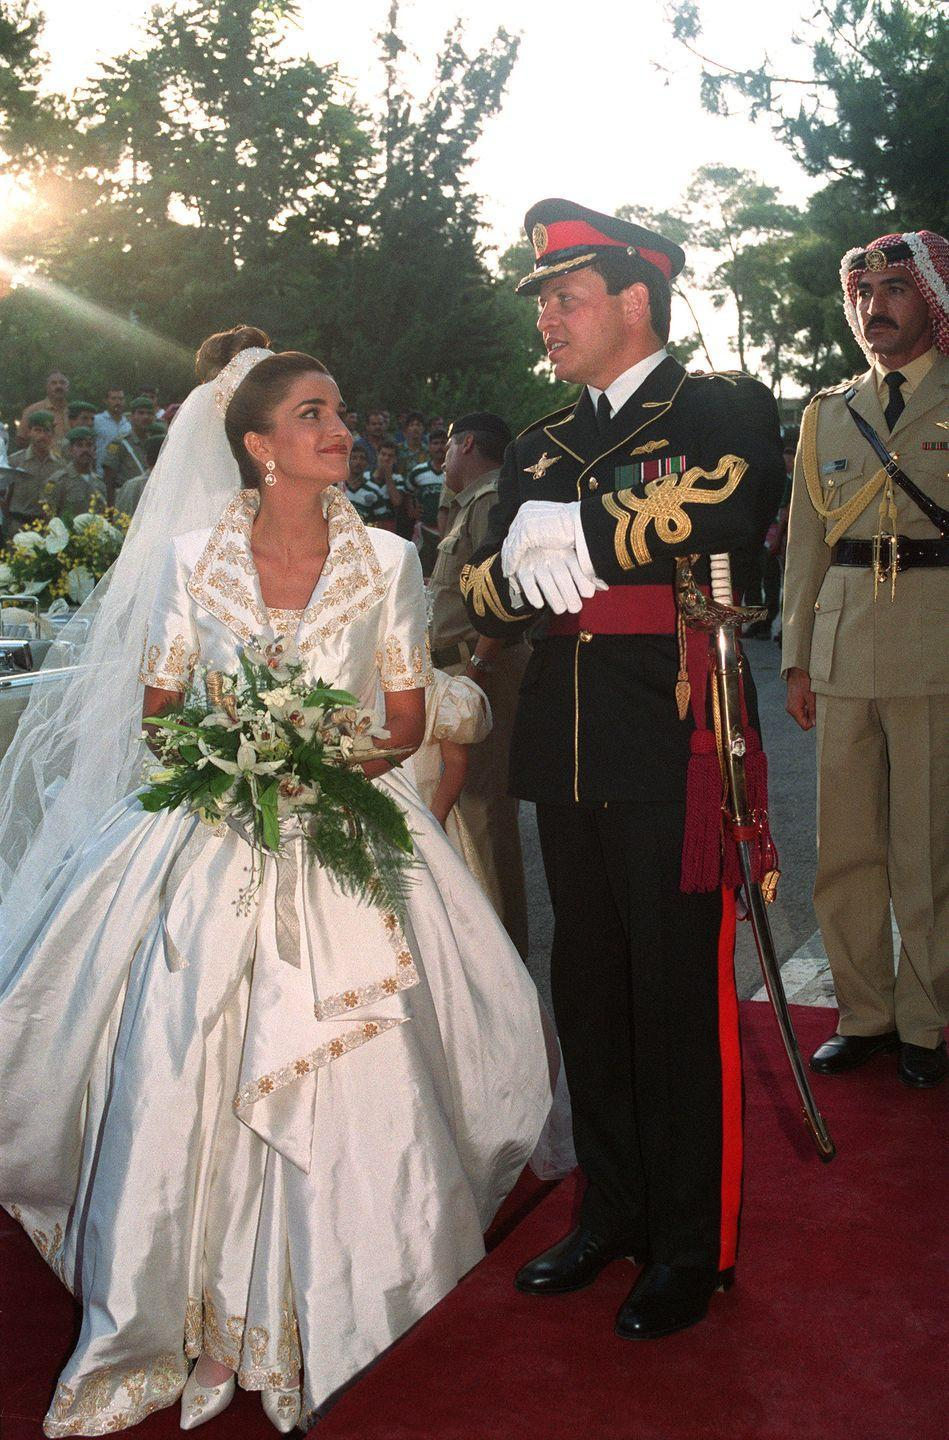 "<p>Queen Rania of Jordan married Prince Abdullah on June 10, 1993 in Amman. She wore an intricate gown, created by British designer Bruce Oldfield, with a voluminous skirt and gold-detailed trim. </p><p><strong>See more:</strong> <a href=""https://www.townandcountrymag.com/society/tradition/a15839272/princess-eugenie-engaged/"" rel=""nofollow noopener"" target=""_blank"" data-ylk=""slk:Princess Eugenie is Enagaged!"" class=""link rapid-noclick-resp"">Princess Eugenie is Enagaged!</a><br></p>"